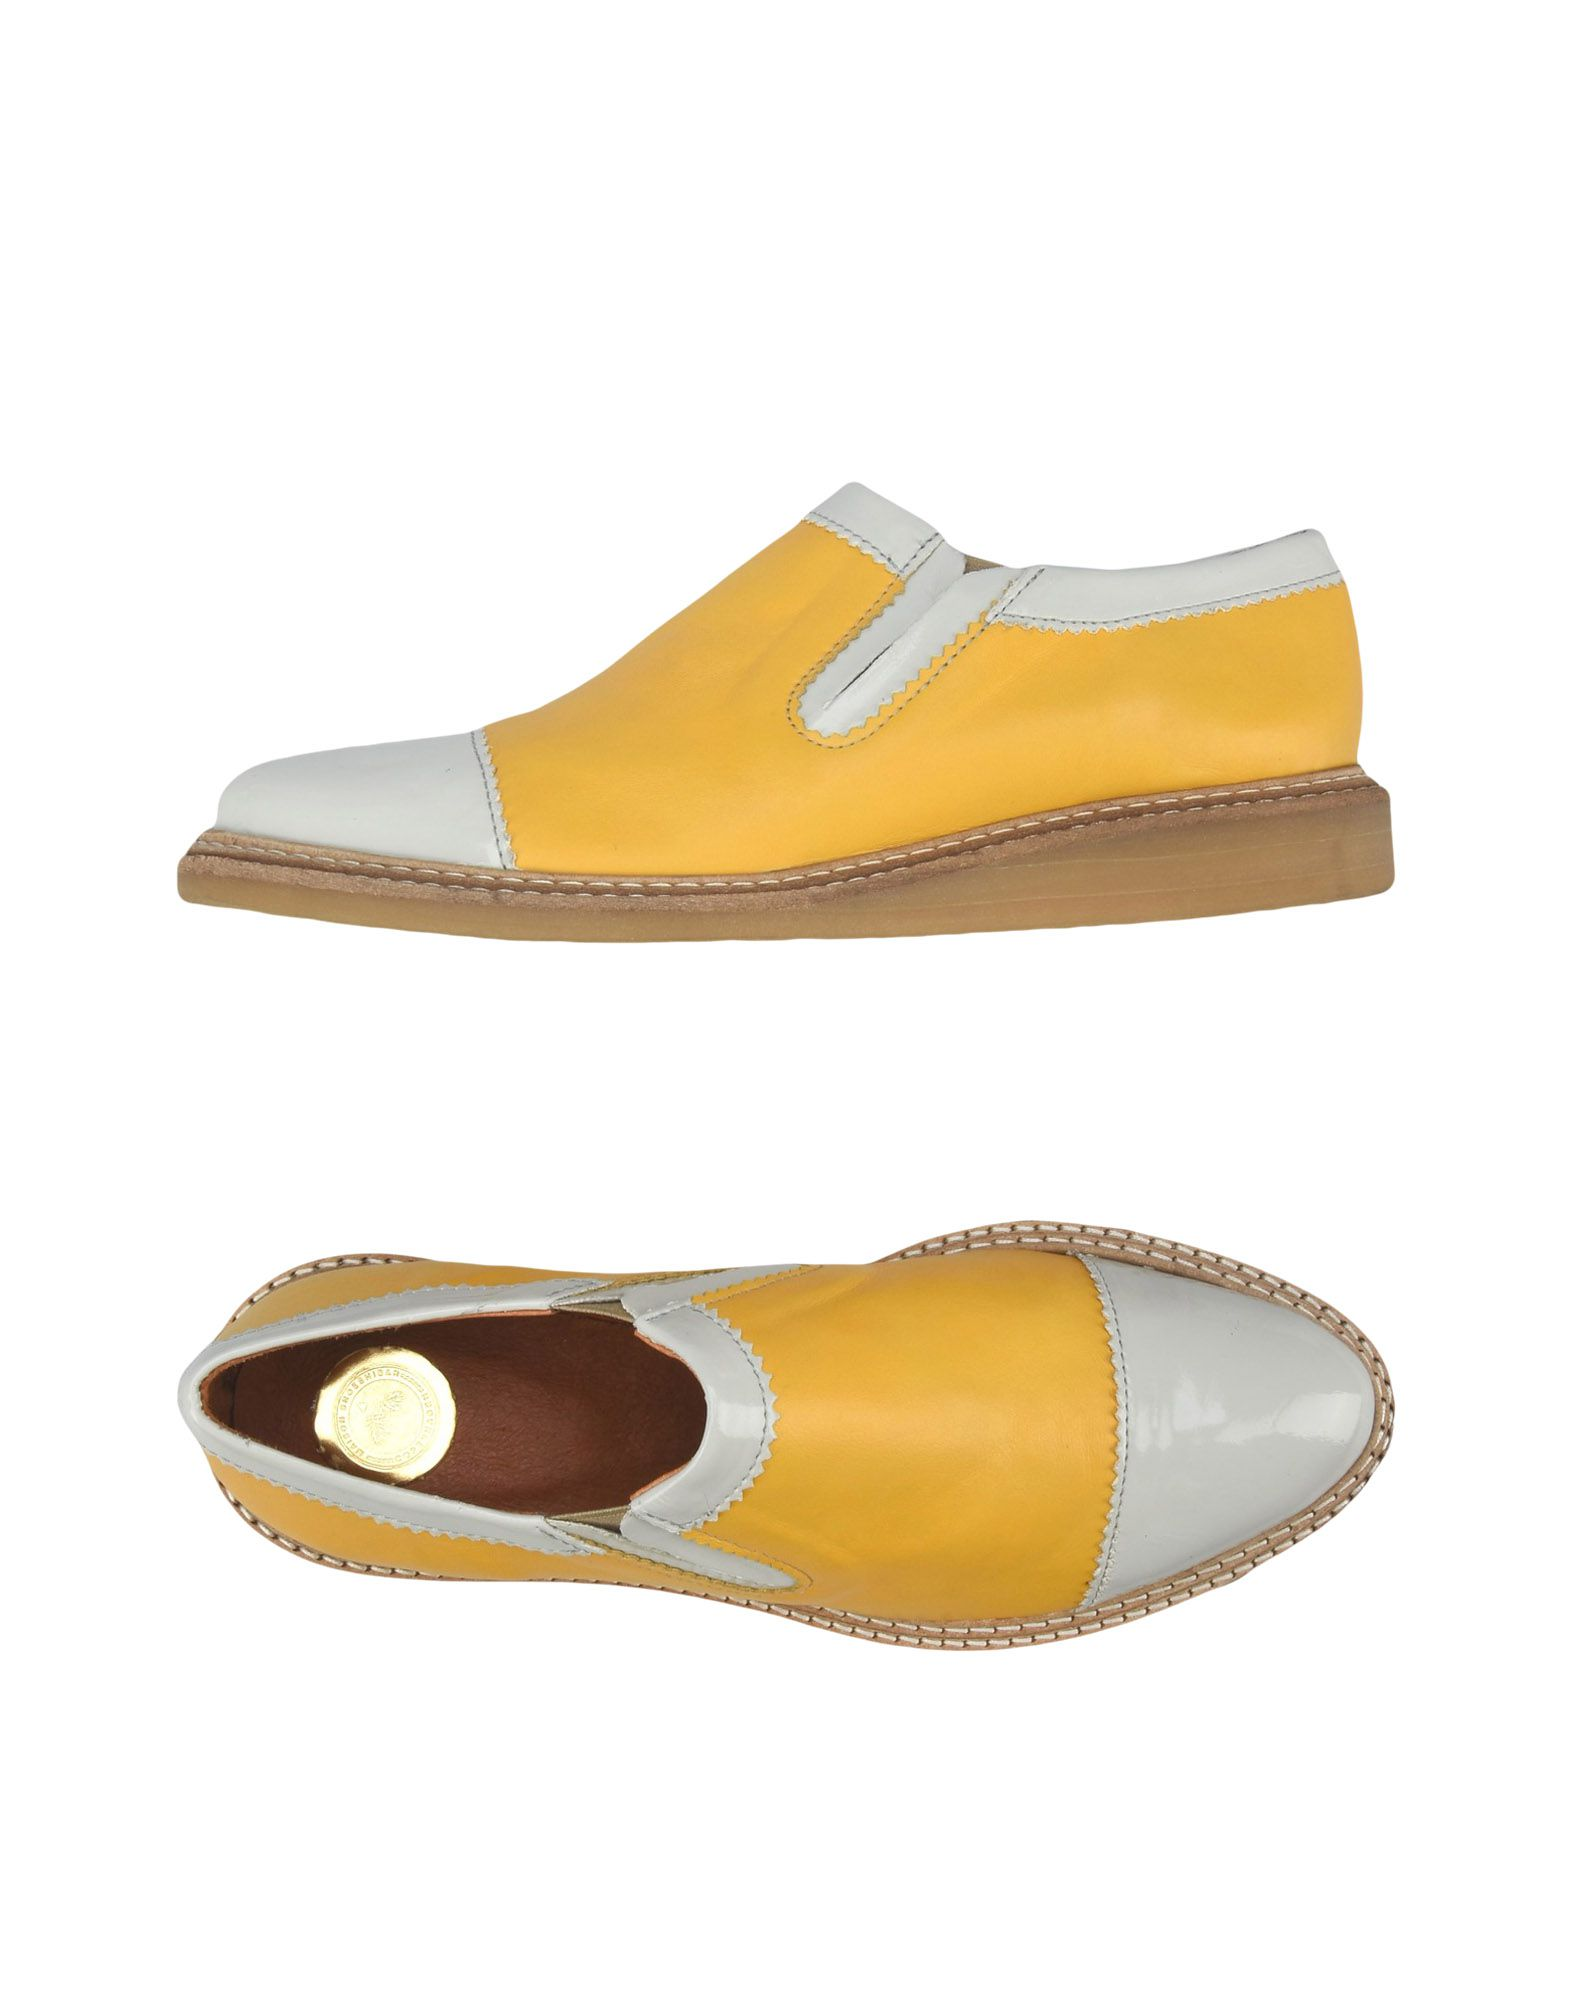 Mocassino Maison Shoeshibar Chic - Donna - Acquista online su